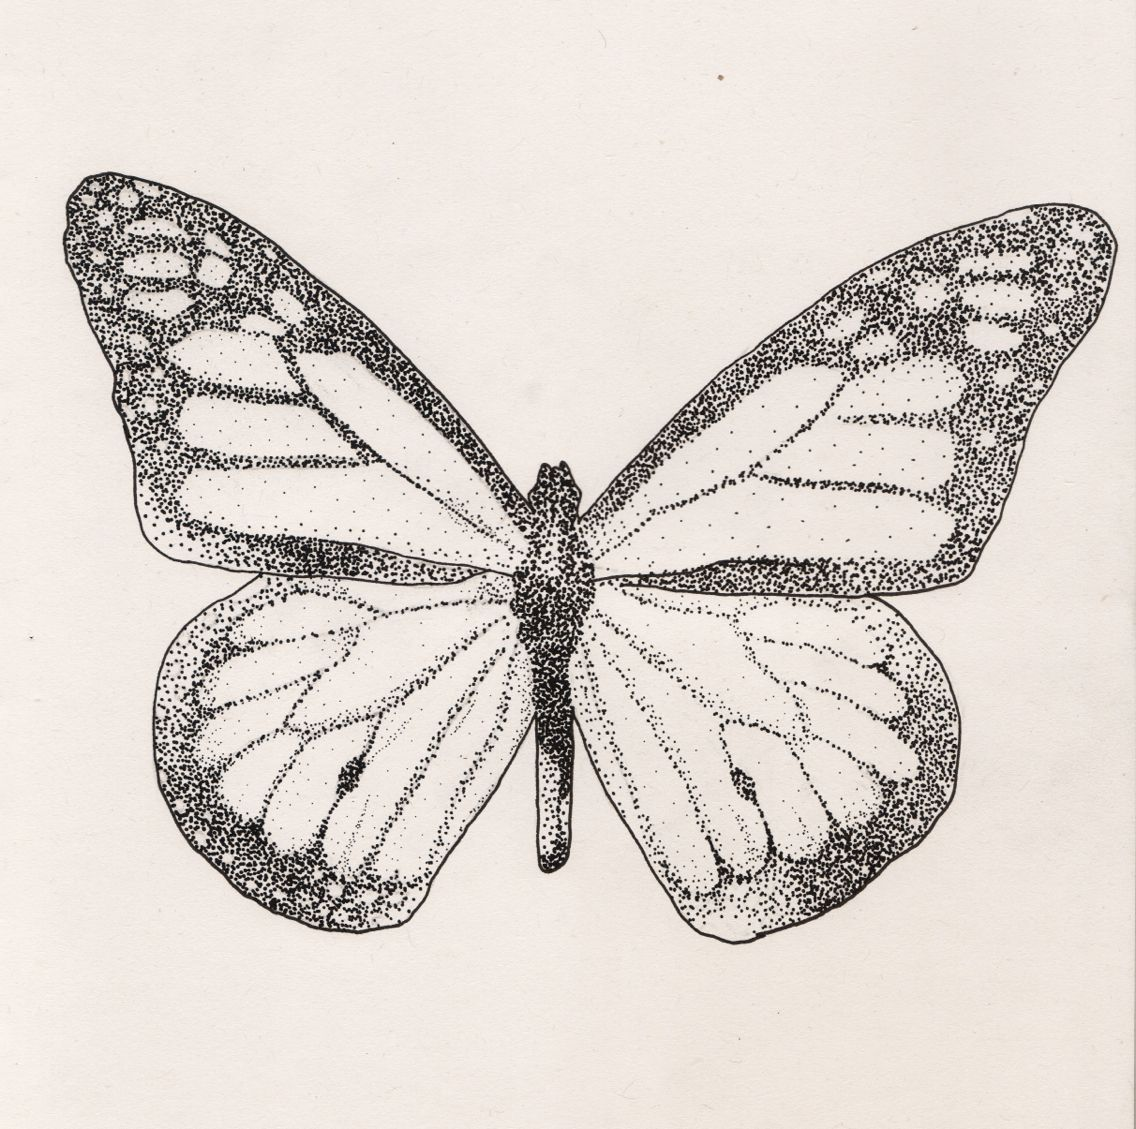 Simple Butterfly Drawing: Pointillism Illustration Day One Of Pointillism, A